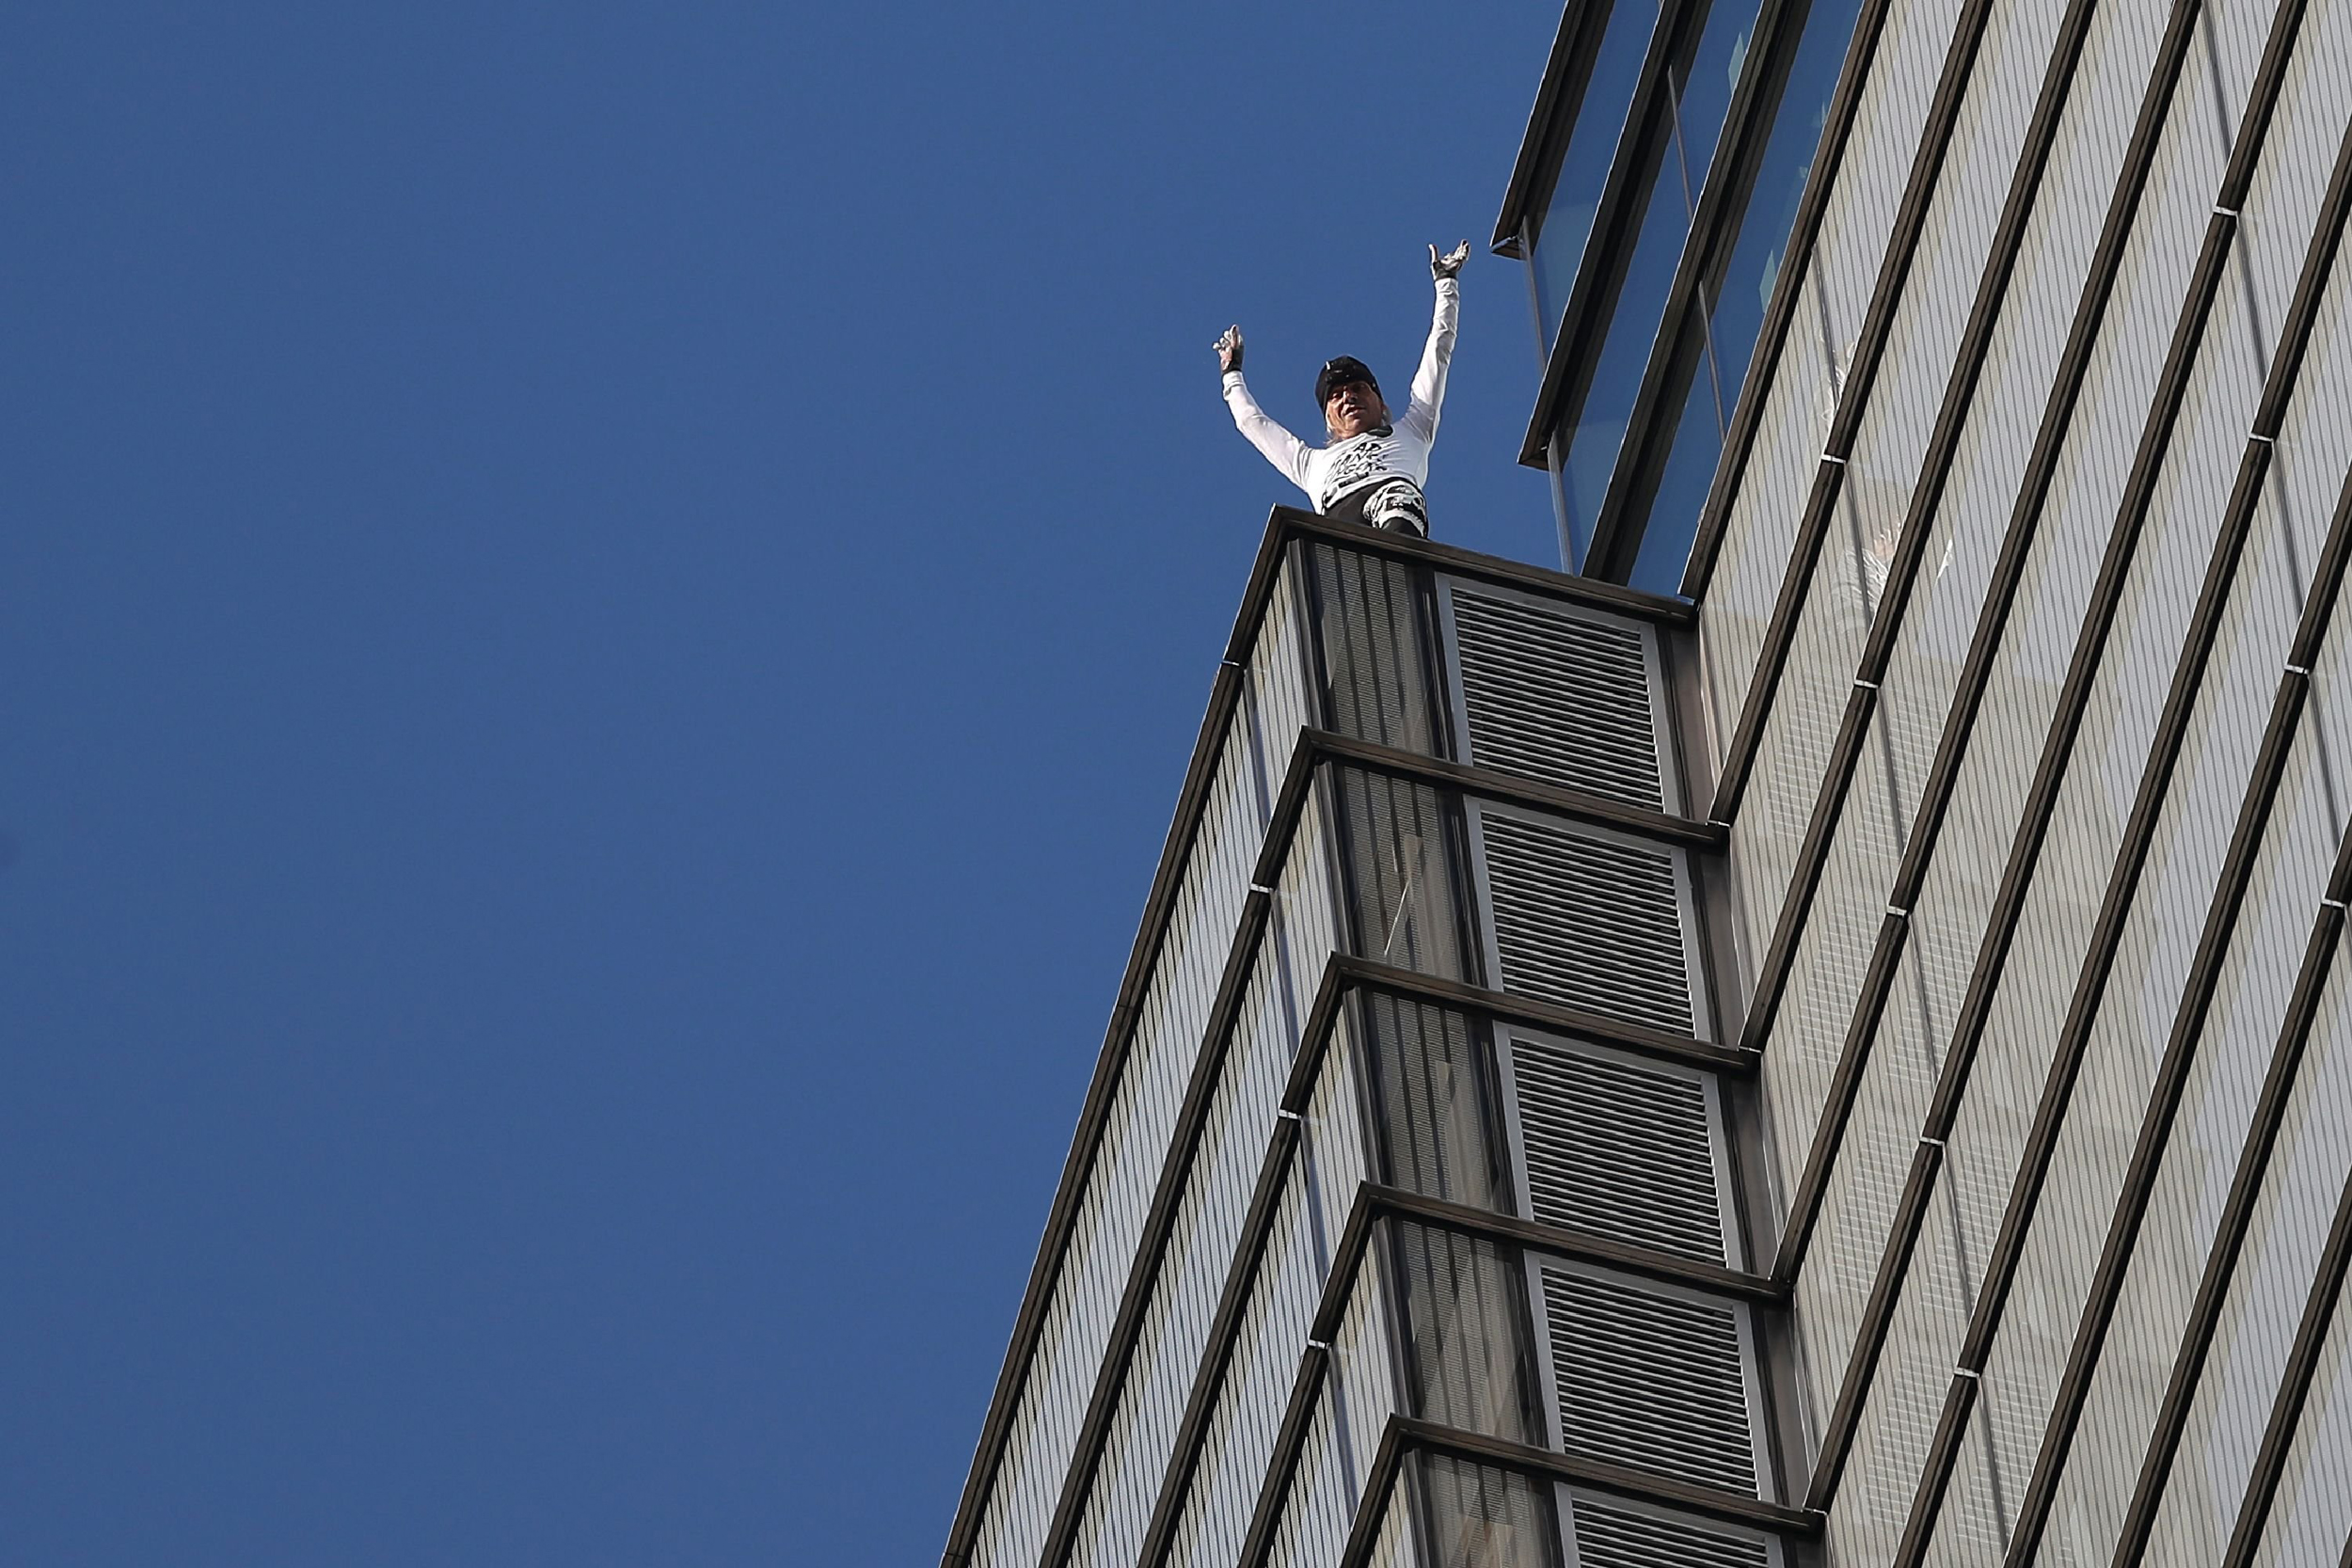 Human Spider Alain Robert Arrested After Climbing Heron Tower In London